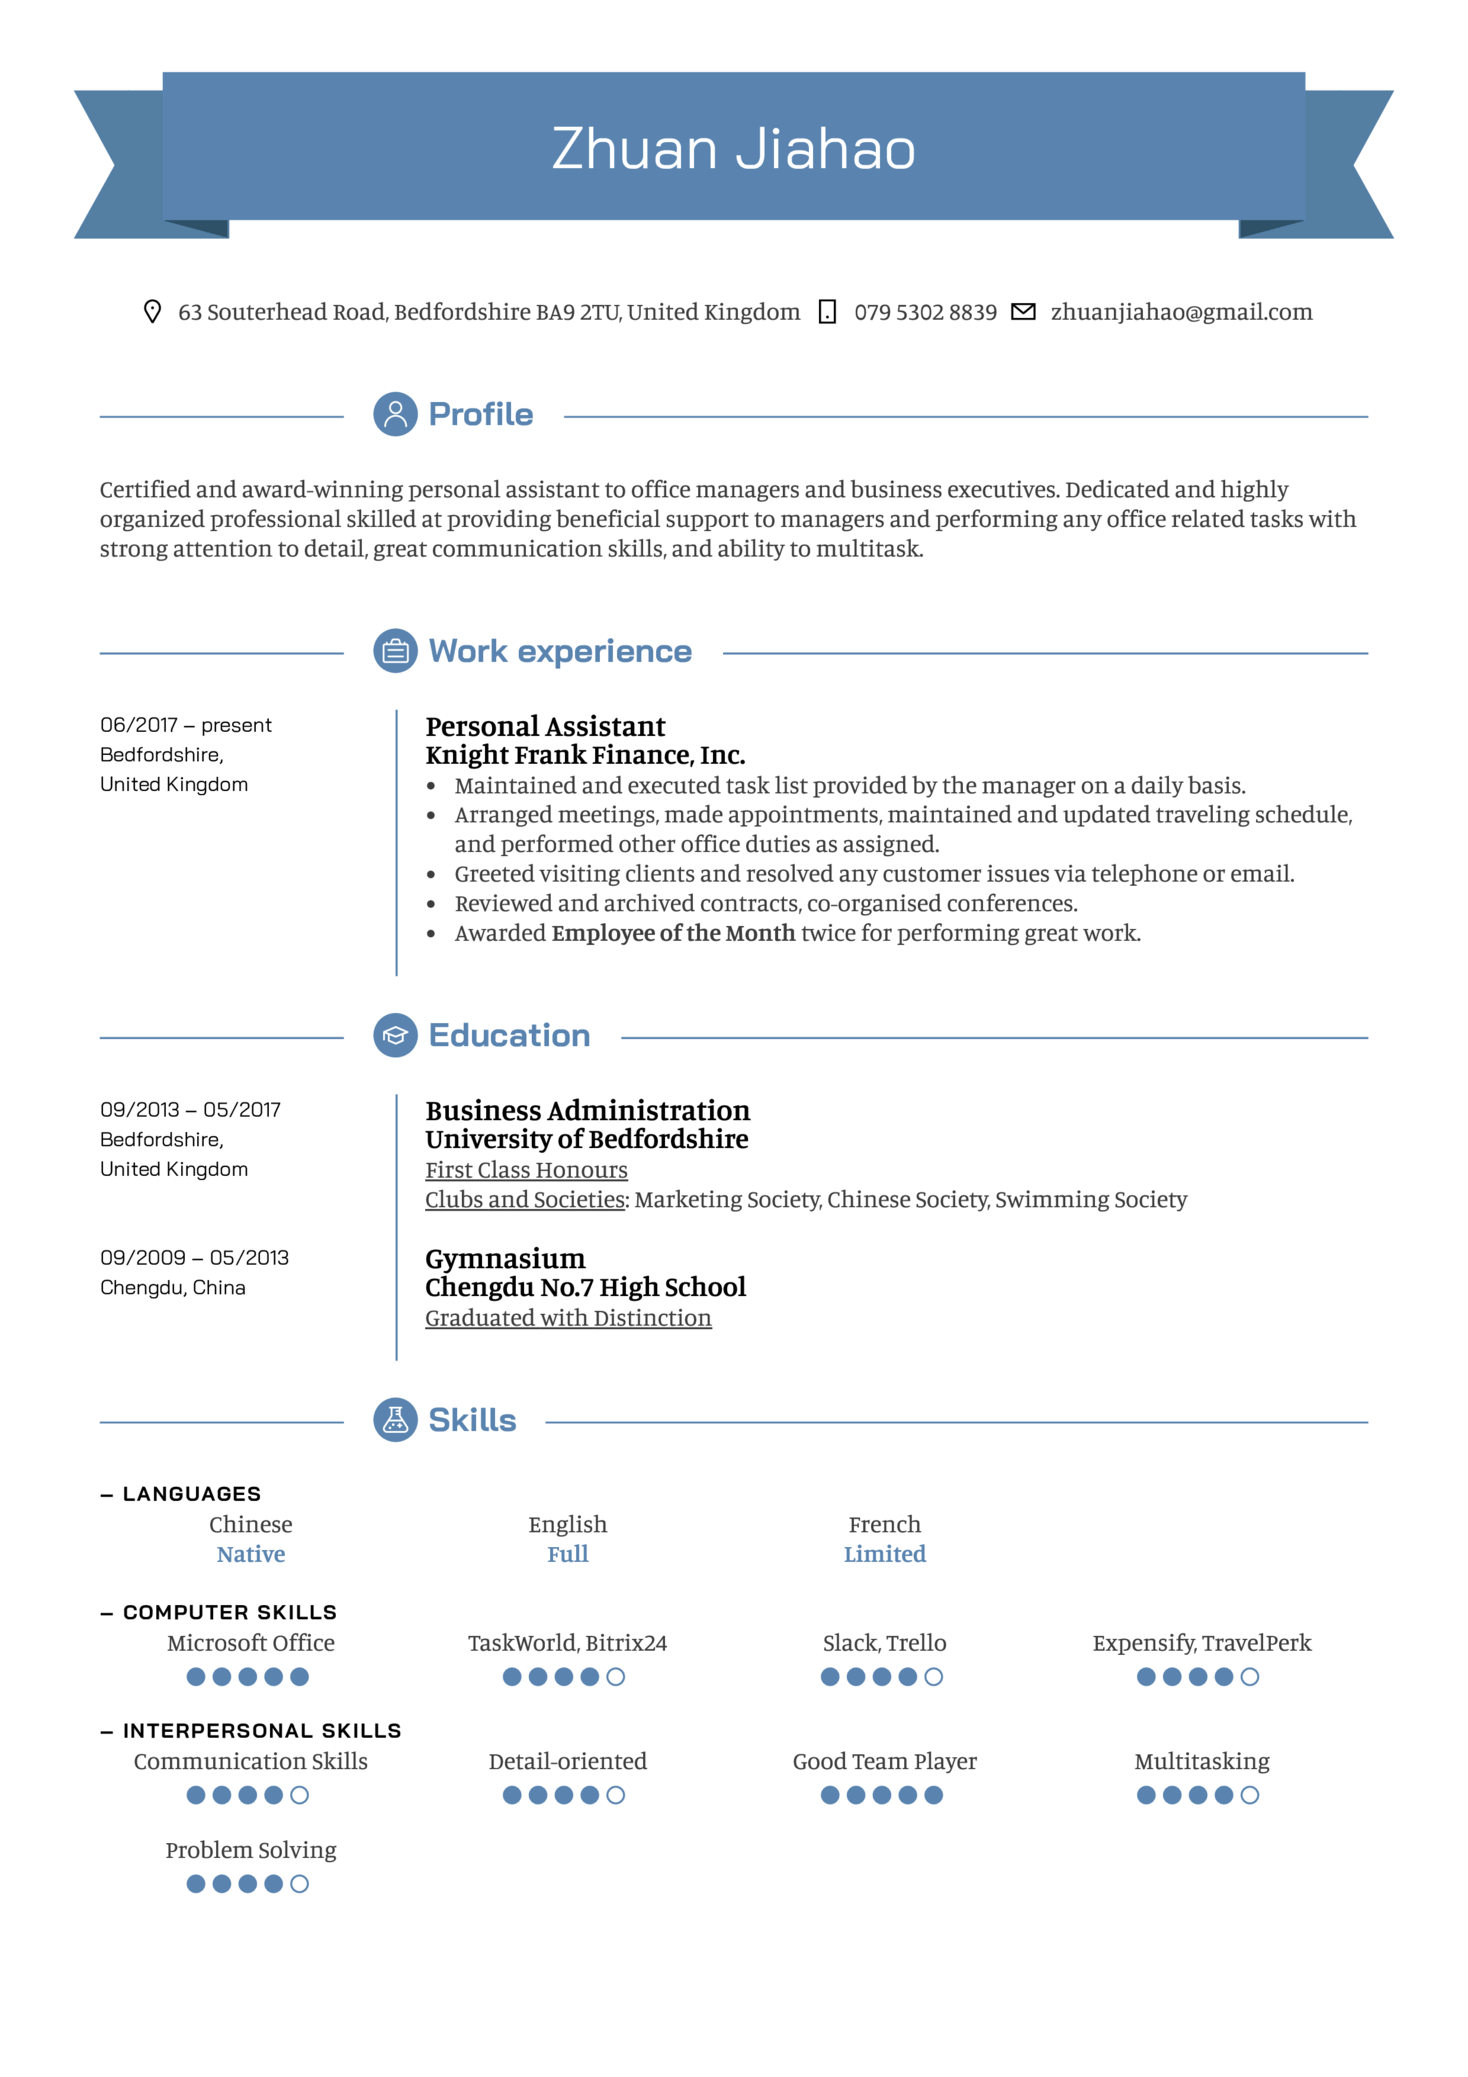 Personal Assistant Resume Example (Part 1)